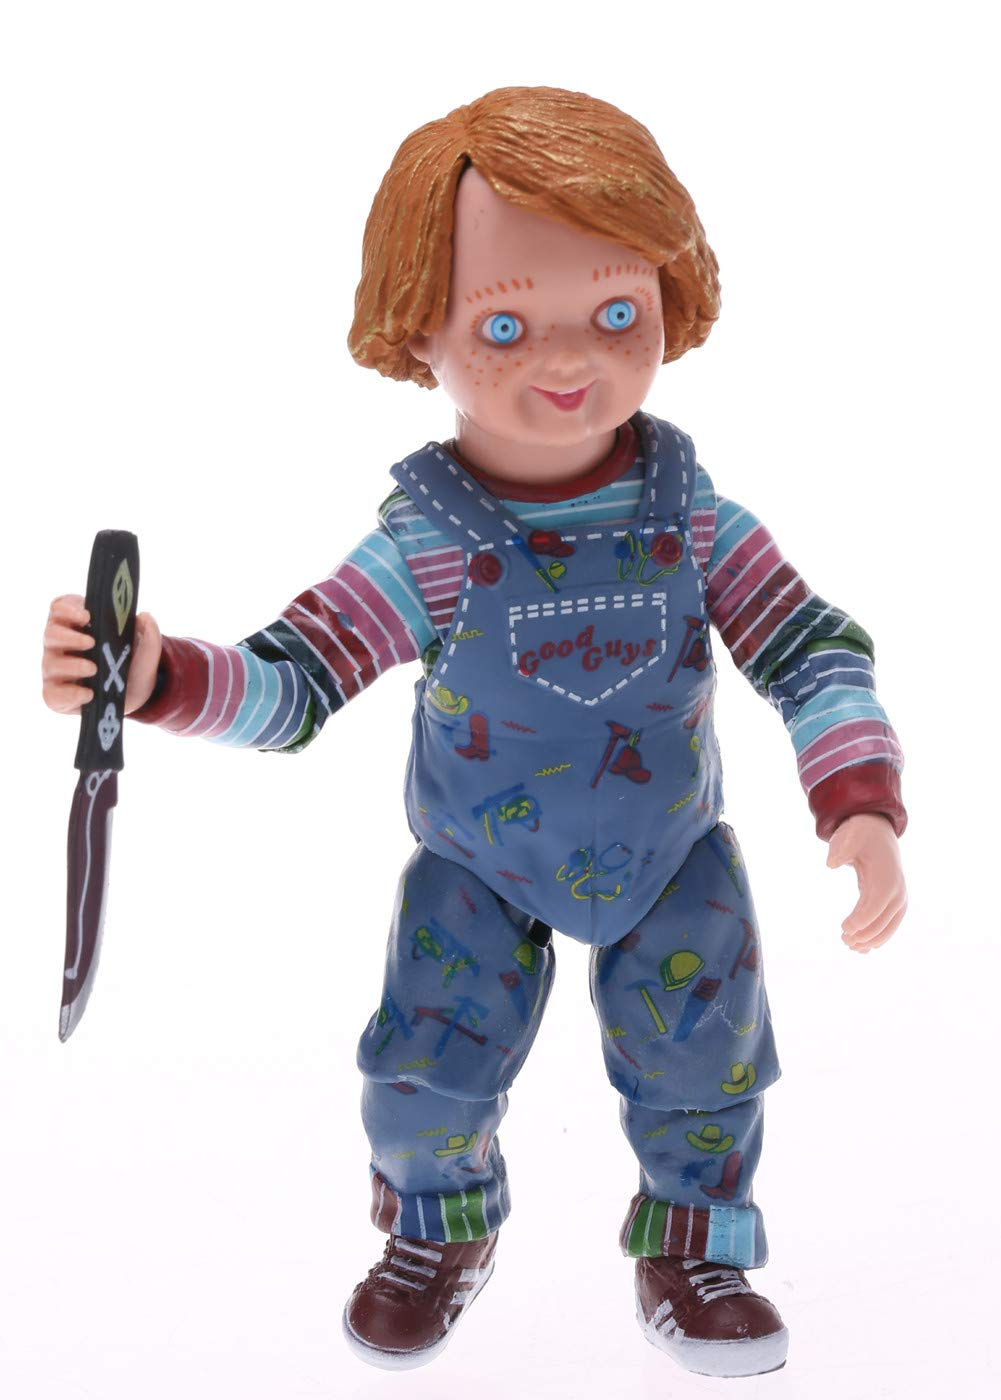 PVC 4 BODAN NECA Action Figure Chucky(Chuckie) Action Figure Doll Statues Model Horror Collection Gifts